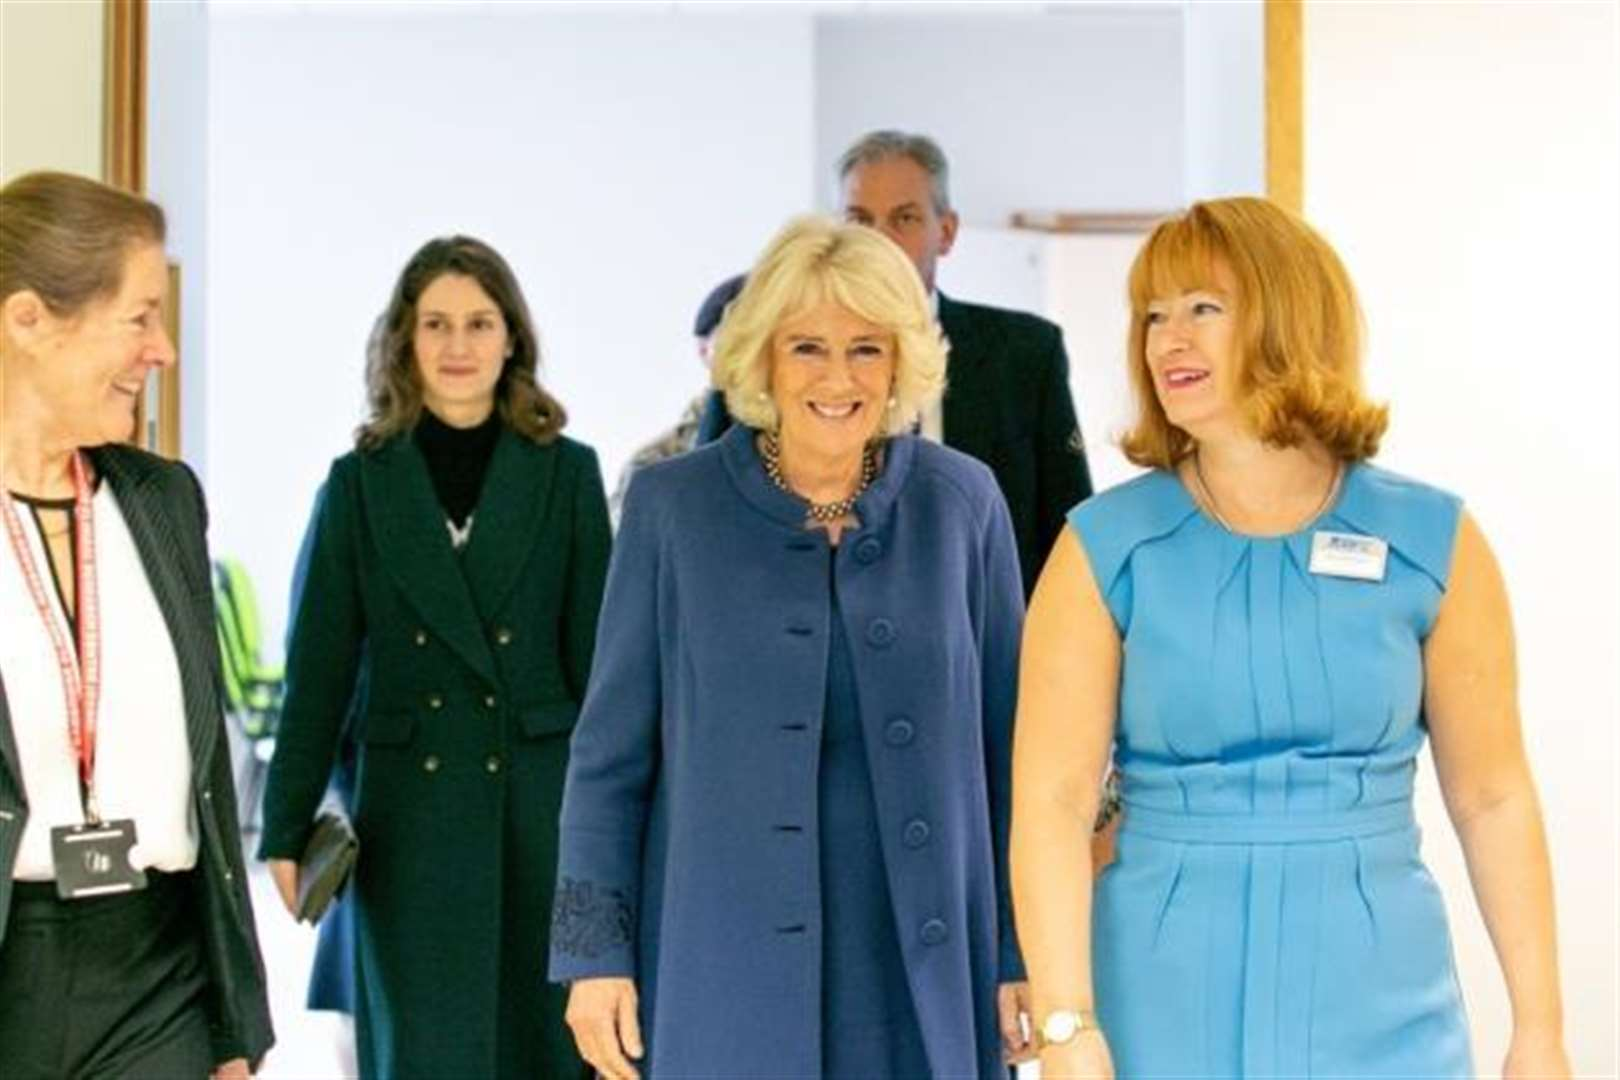 The Duchess of Cornwall visits Addenbrooke's Hospital